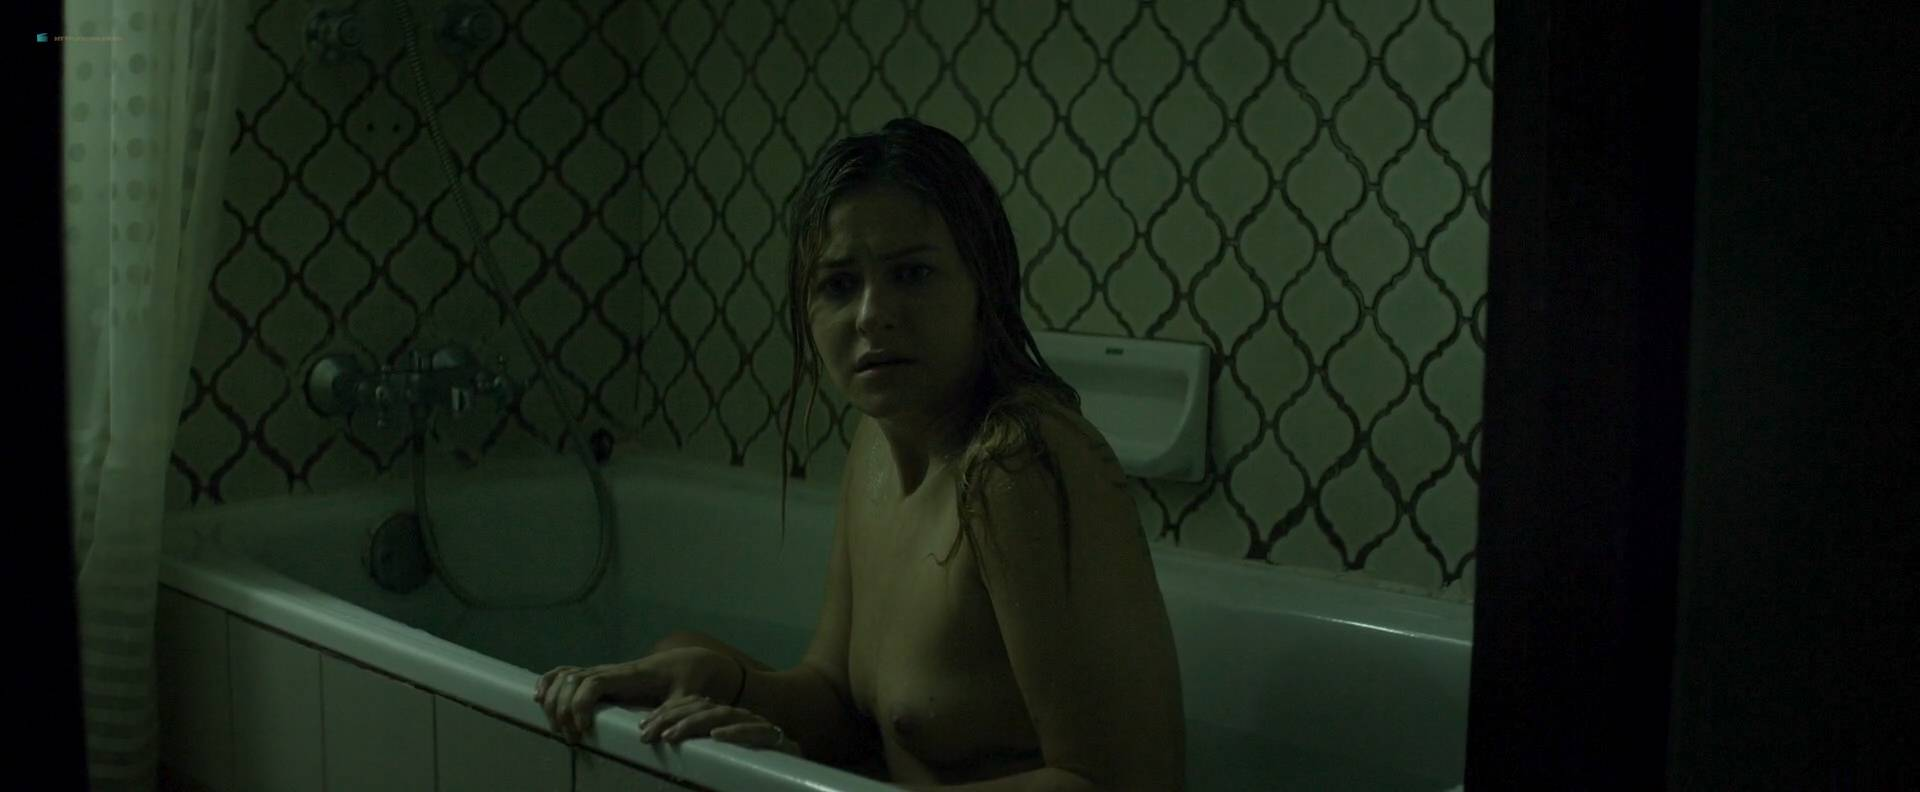 Scout taylor-compton nude